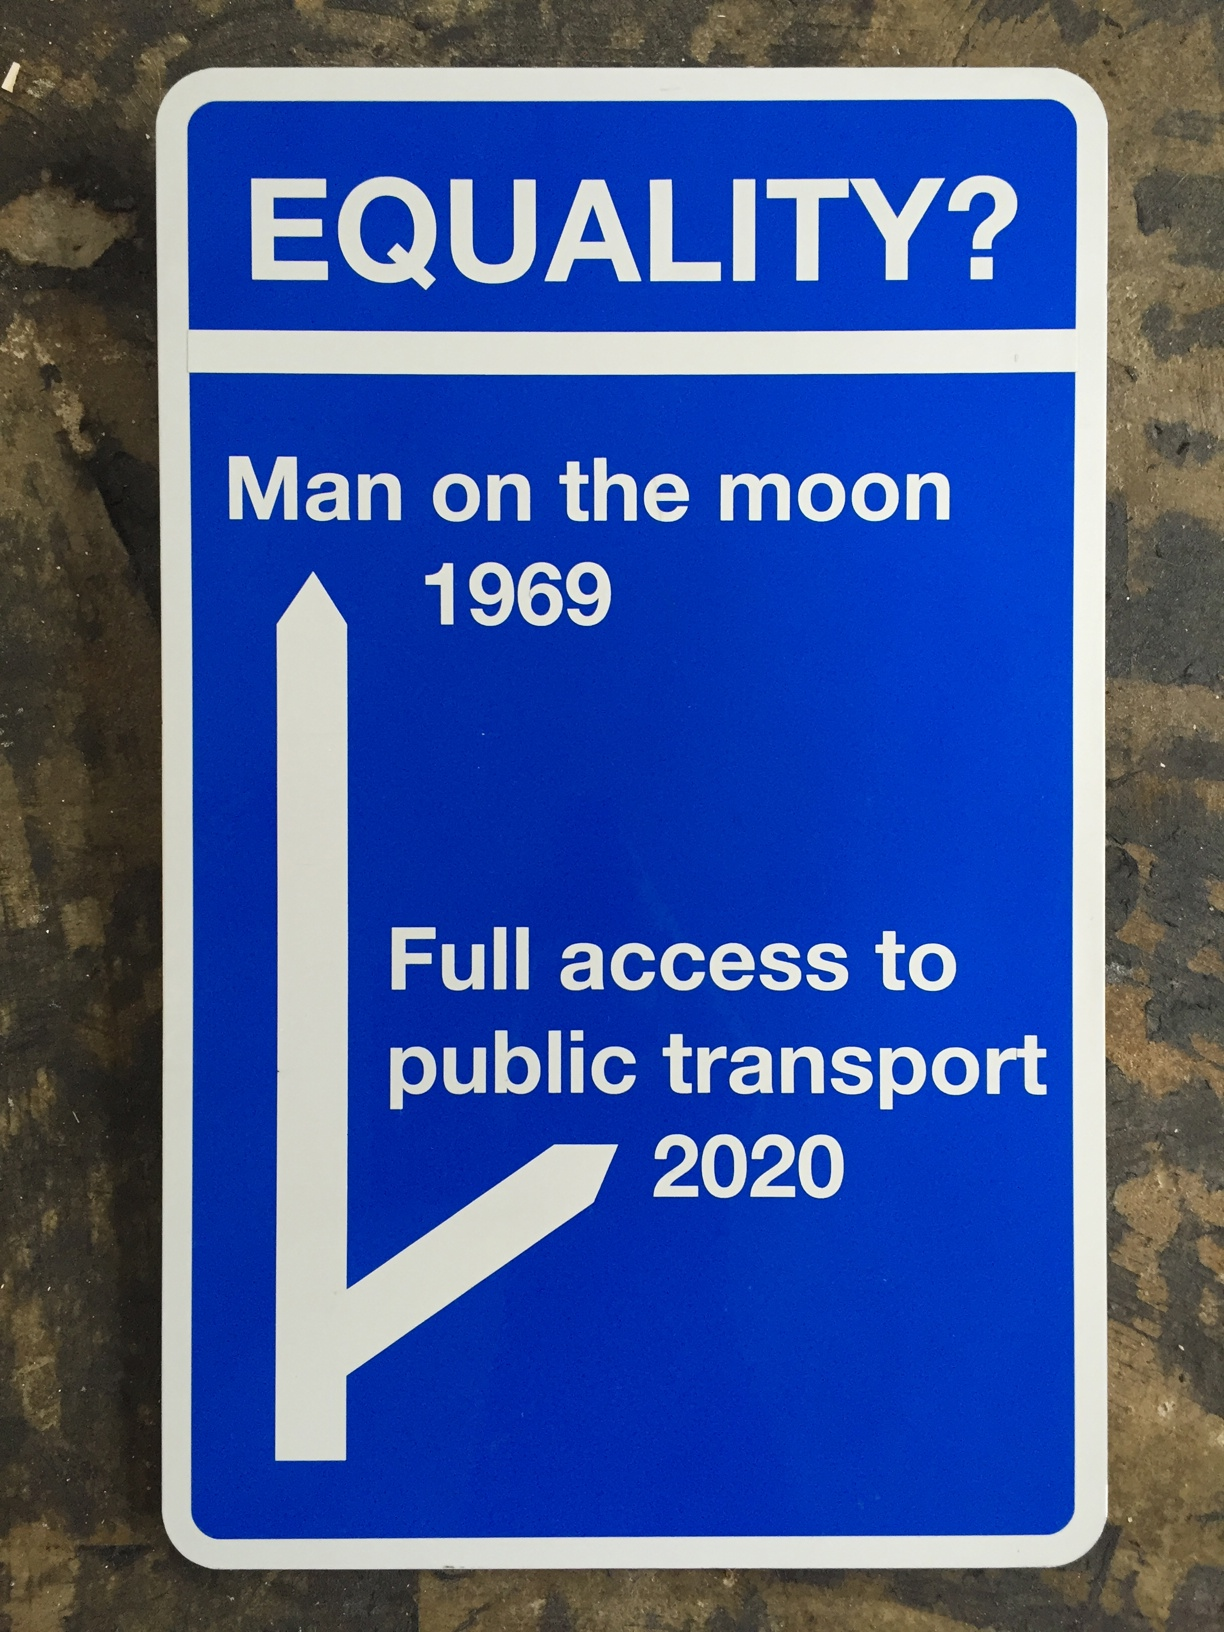 White and blue sign with the title Equality  with a question mark